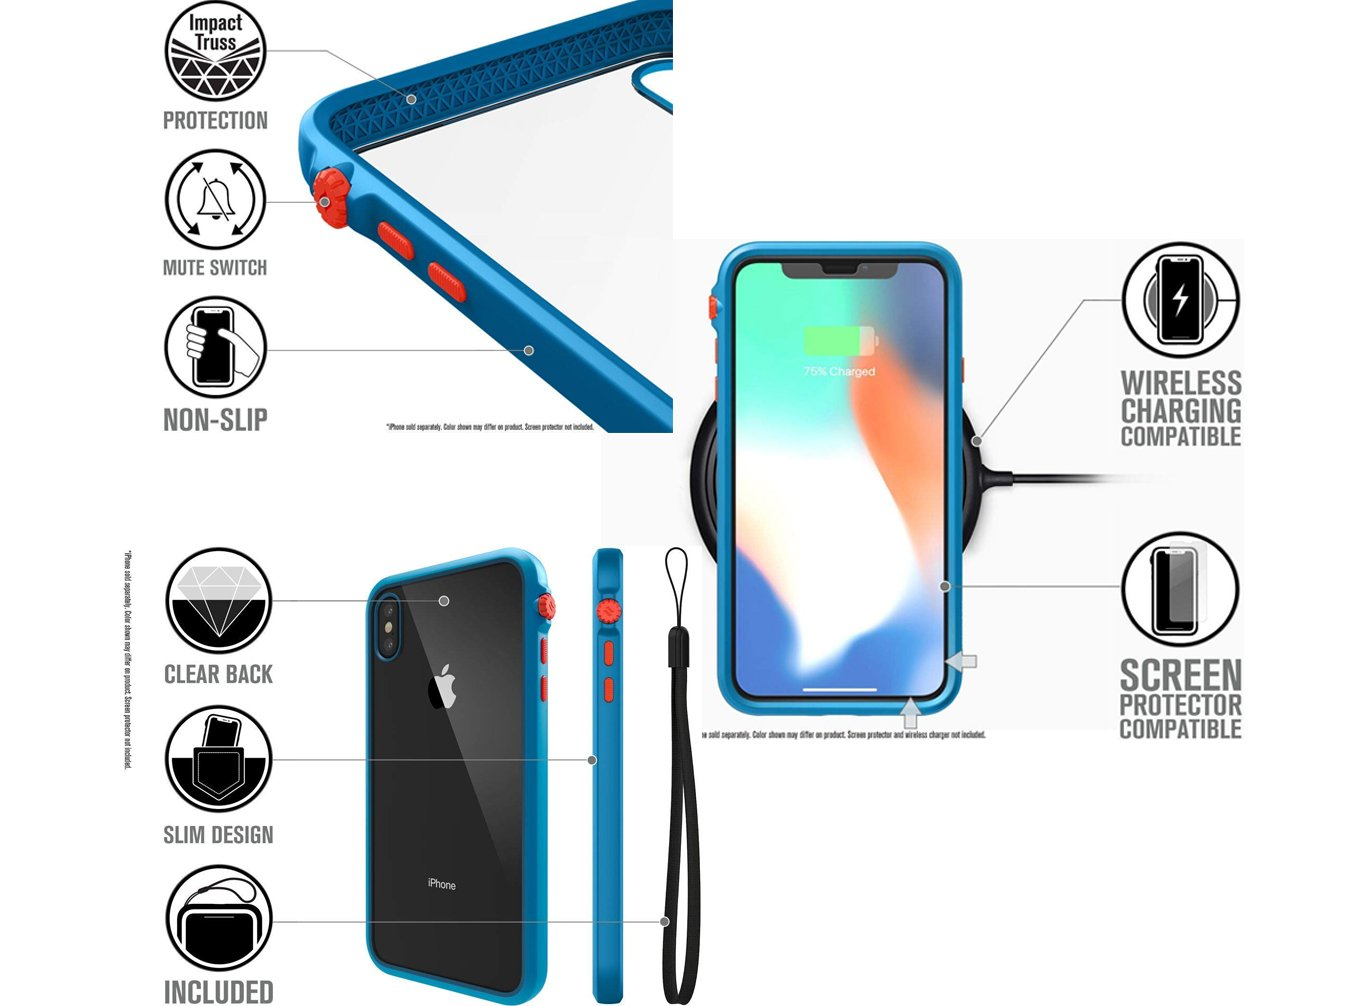 catalyst-impact-protection-iphone-xs-max-malaysia-overview-malaysia-all-2